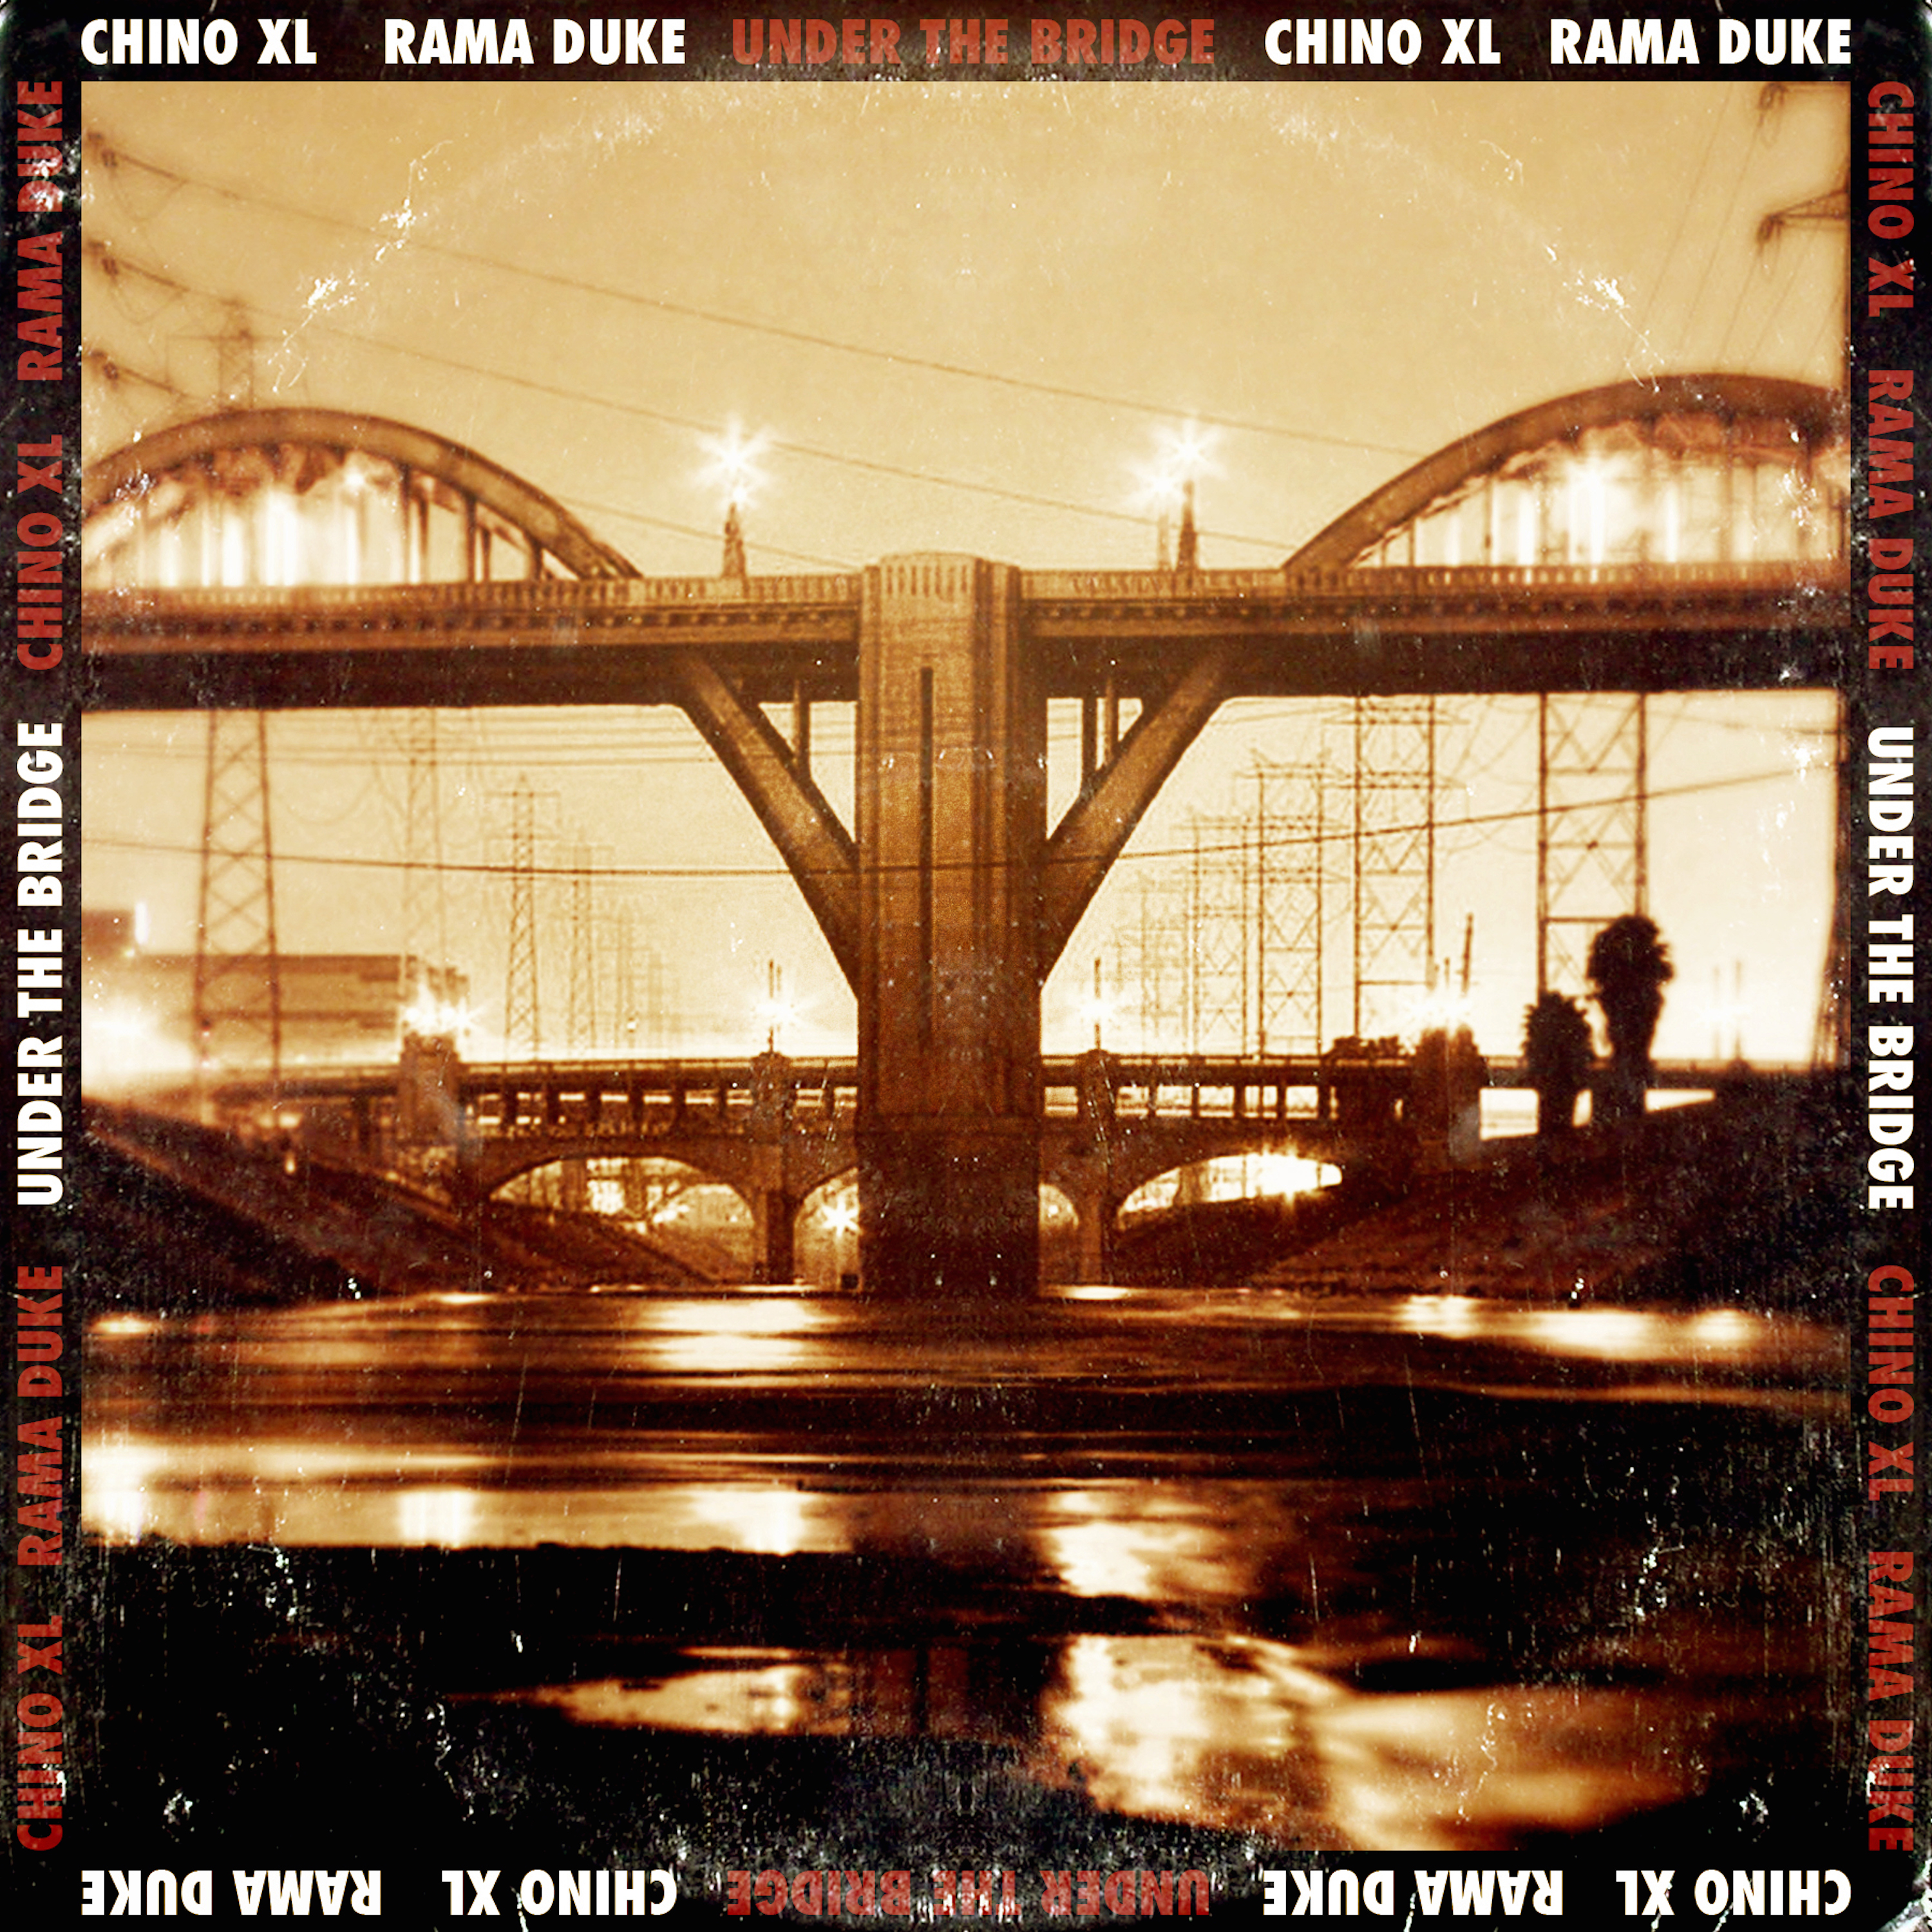 New Music: Chino XL & Rama Duke – Under The Bridge